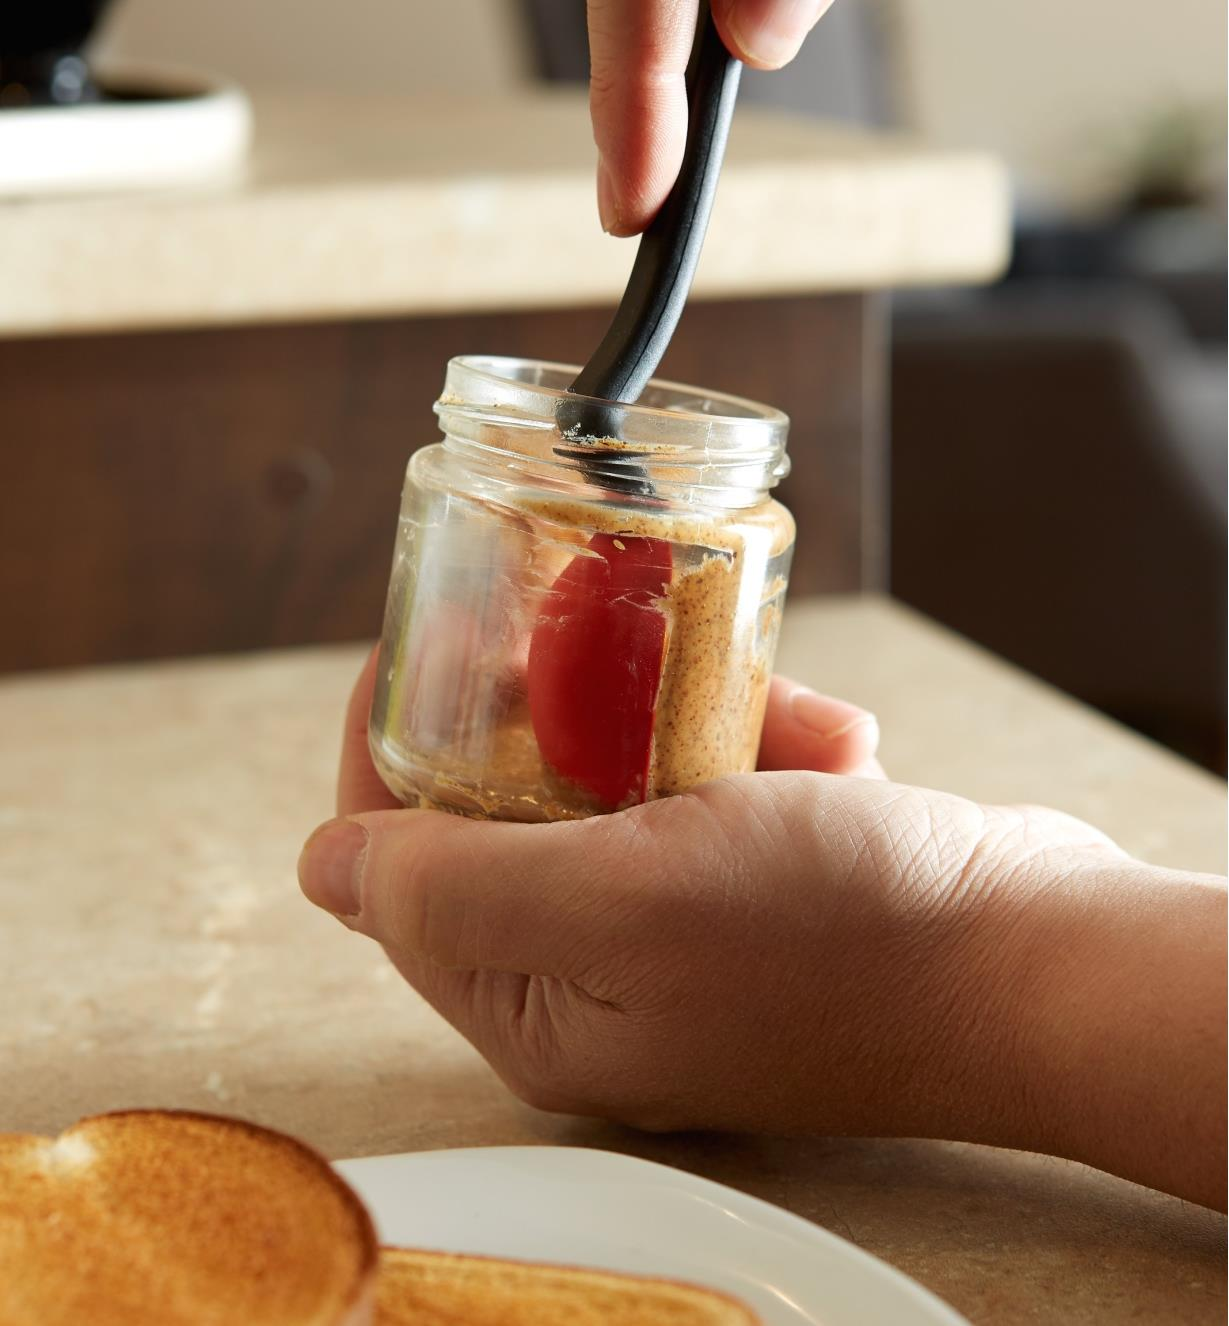 Using the mini spoon-spatula to remove the last bit of peanut butter from a small jar